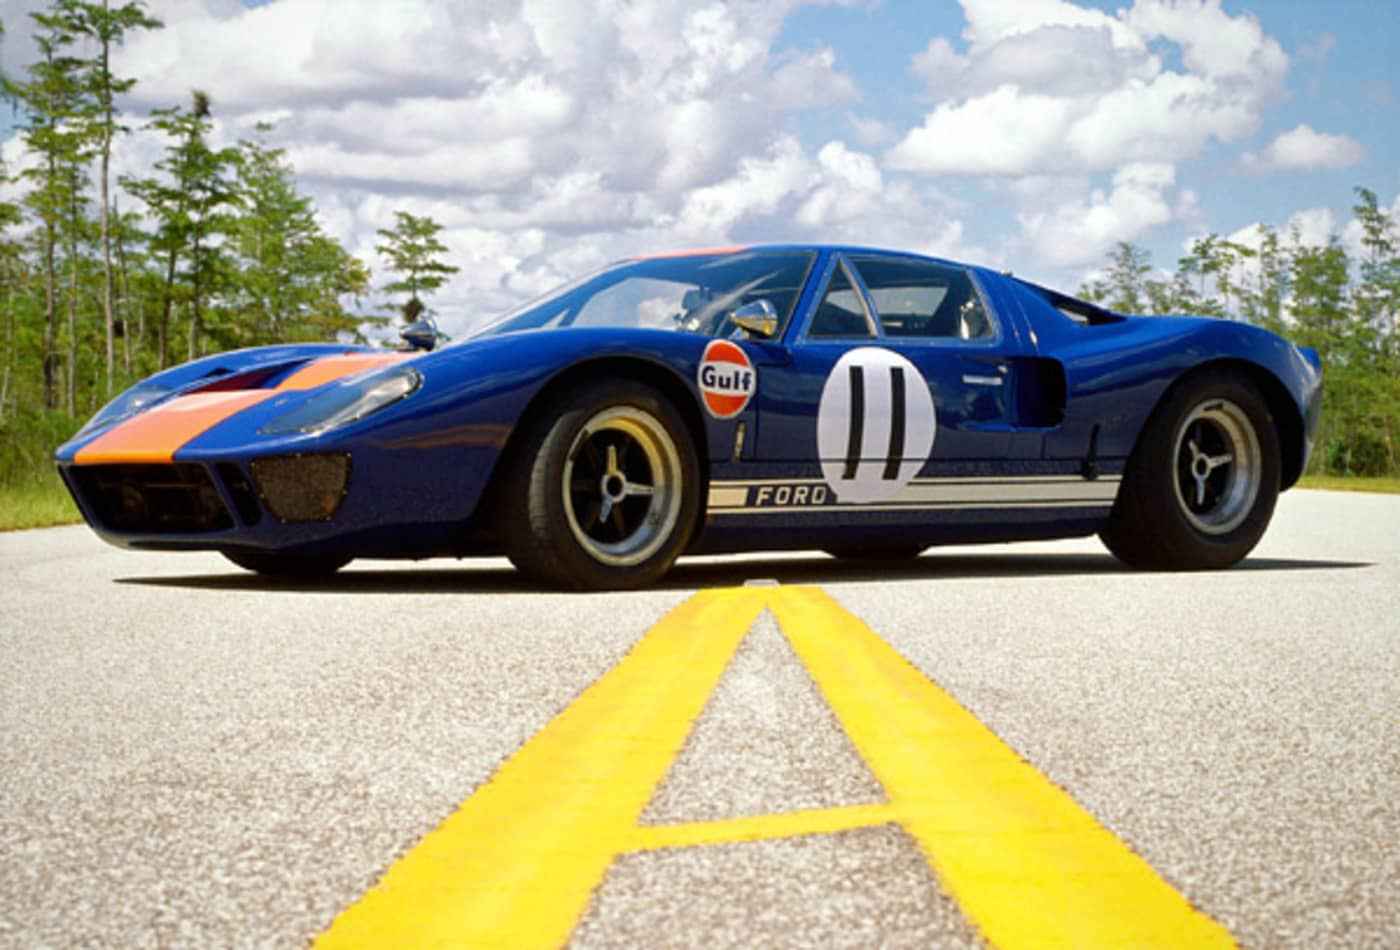 48705393 Ford-GT40-Top-10-Best-Looking-Cars-All-Time-CNBC.jpg